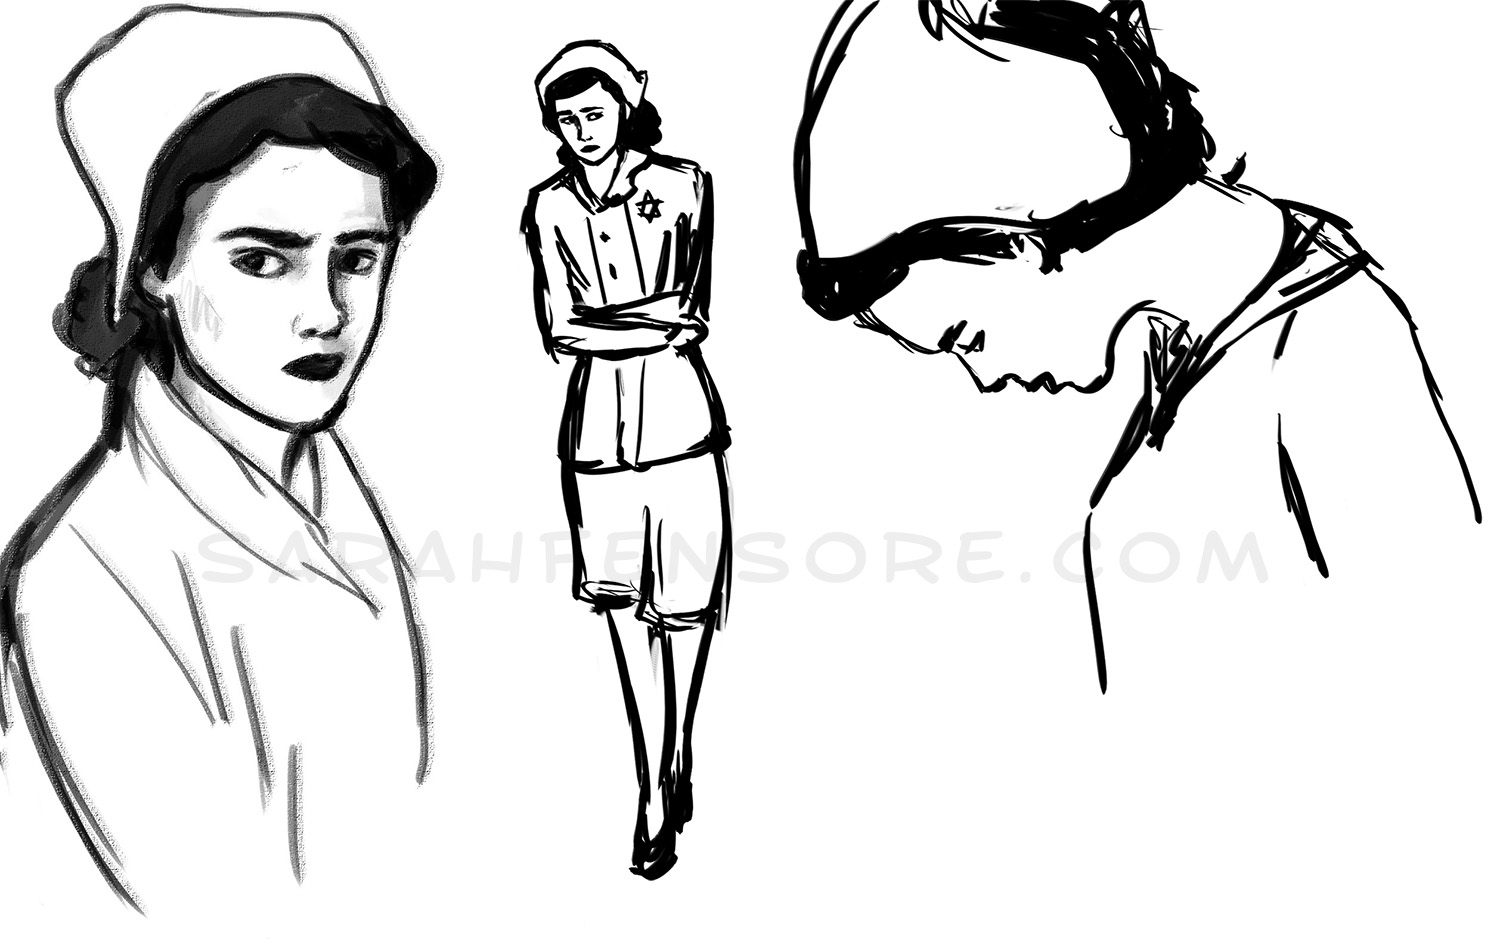 Sketches for a graphic novel on Holocaust Survivor stories.